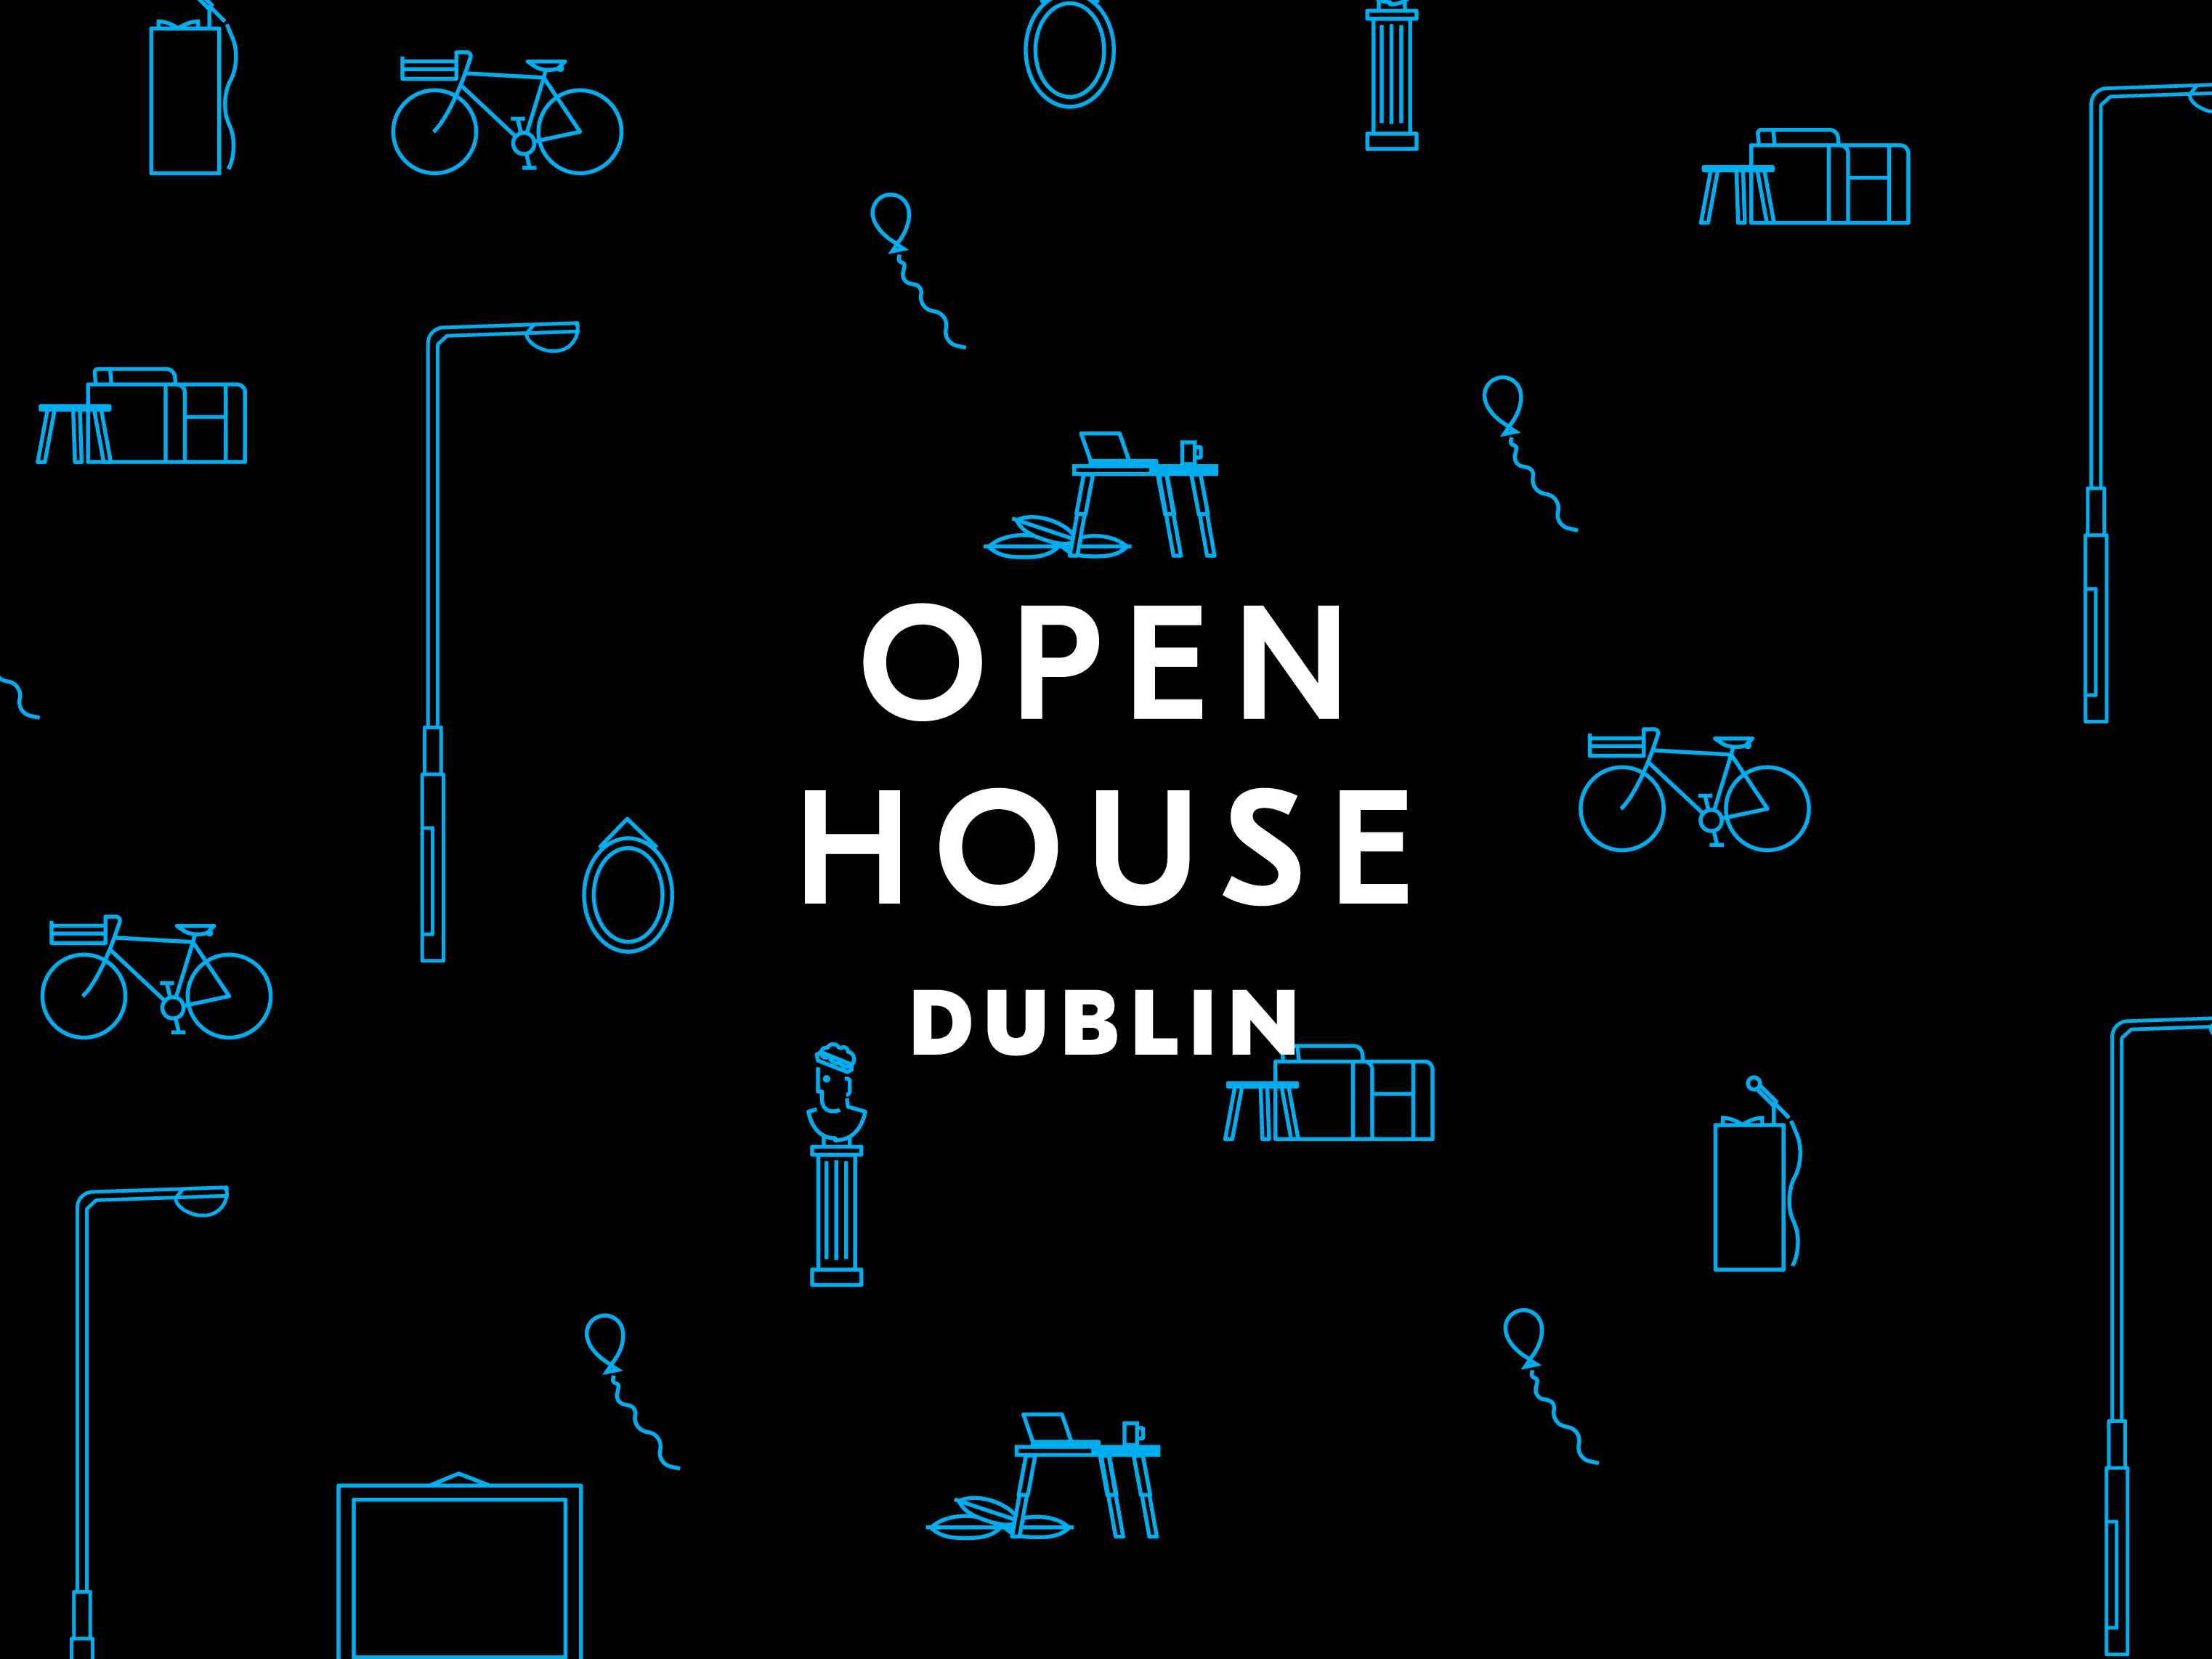 Cover image: Open House Dublin 2016